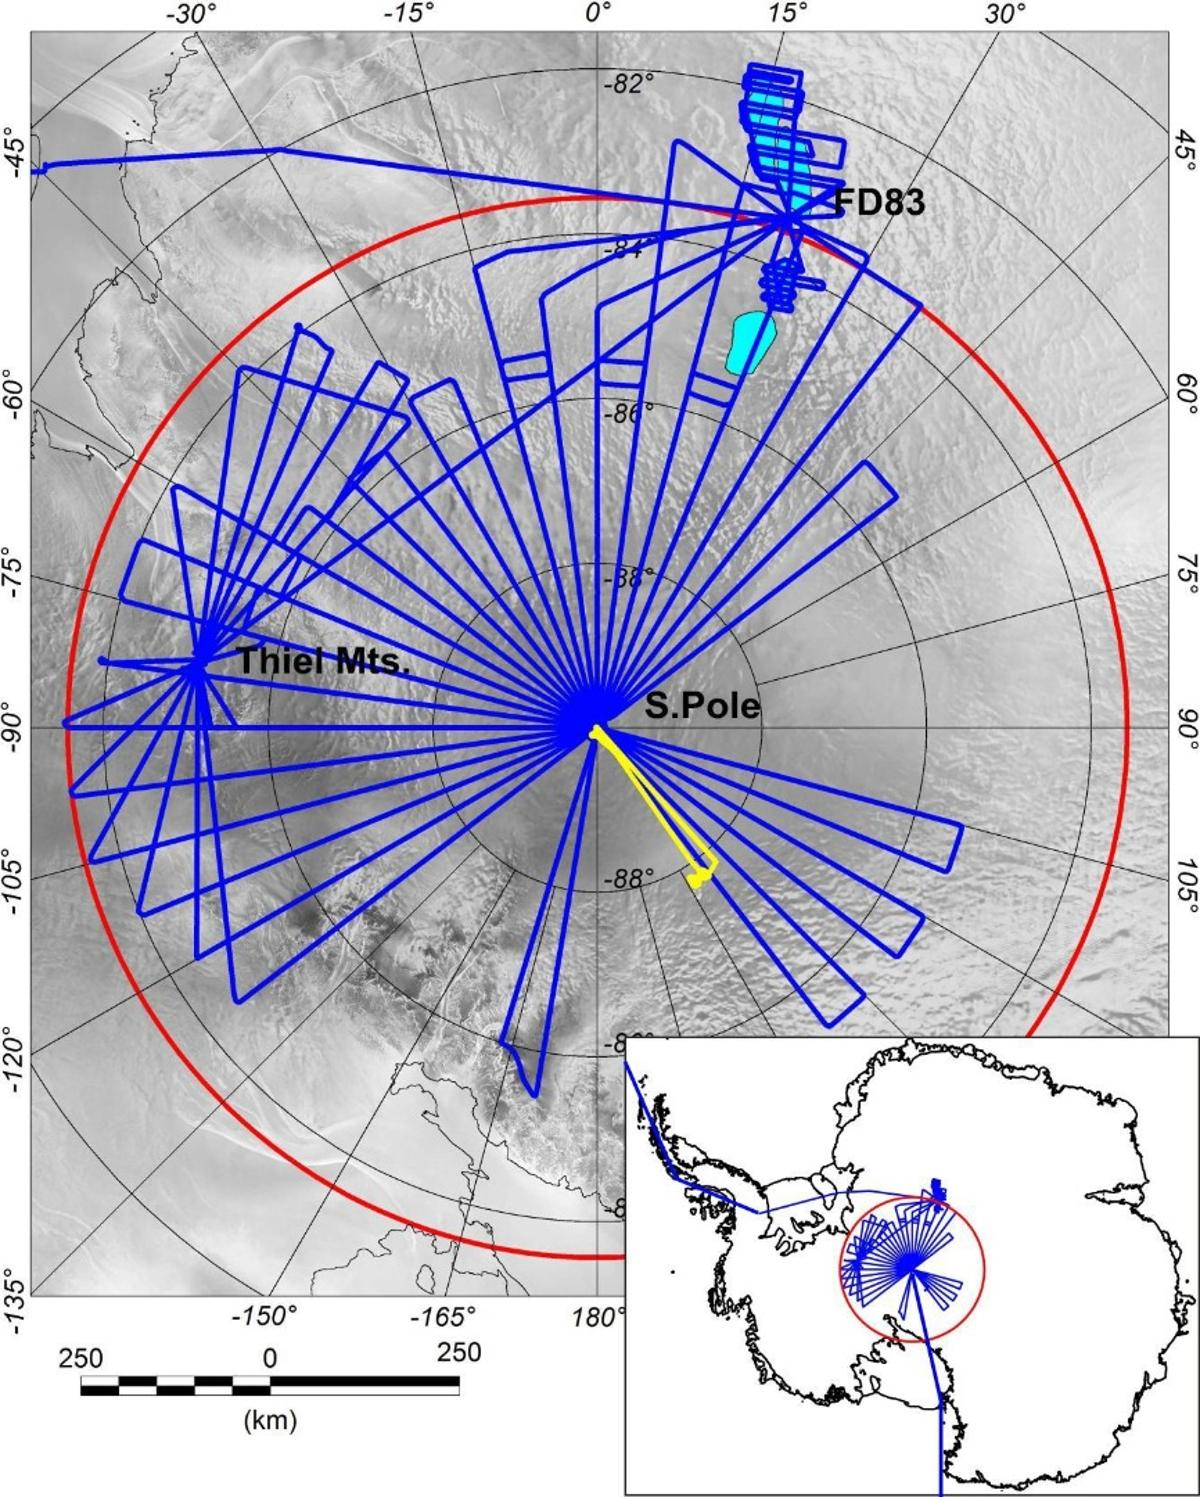 Chart of the PolarGAP survey flights that found the subglacial mountains and valleys